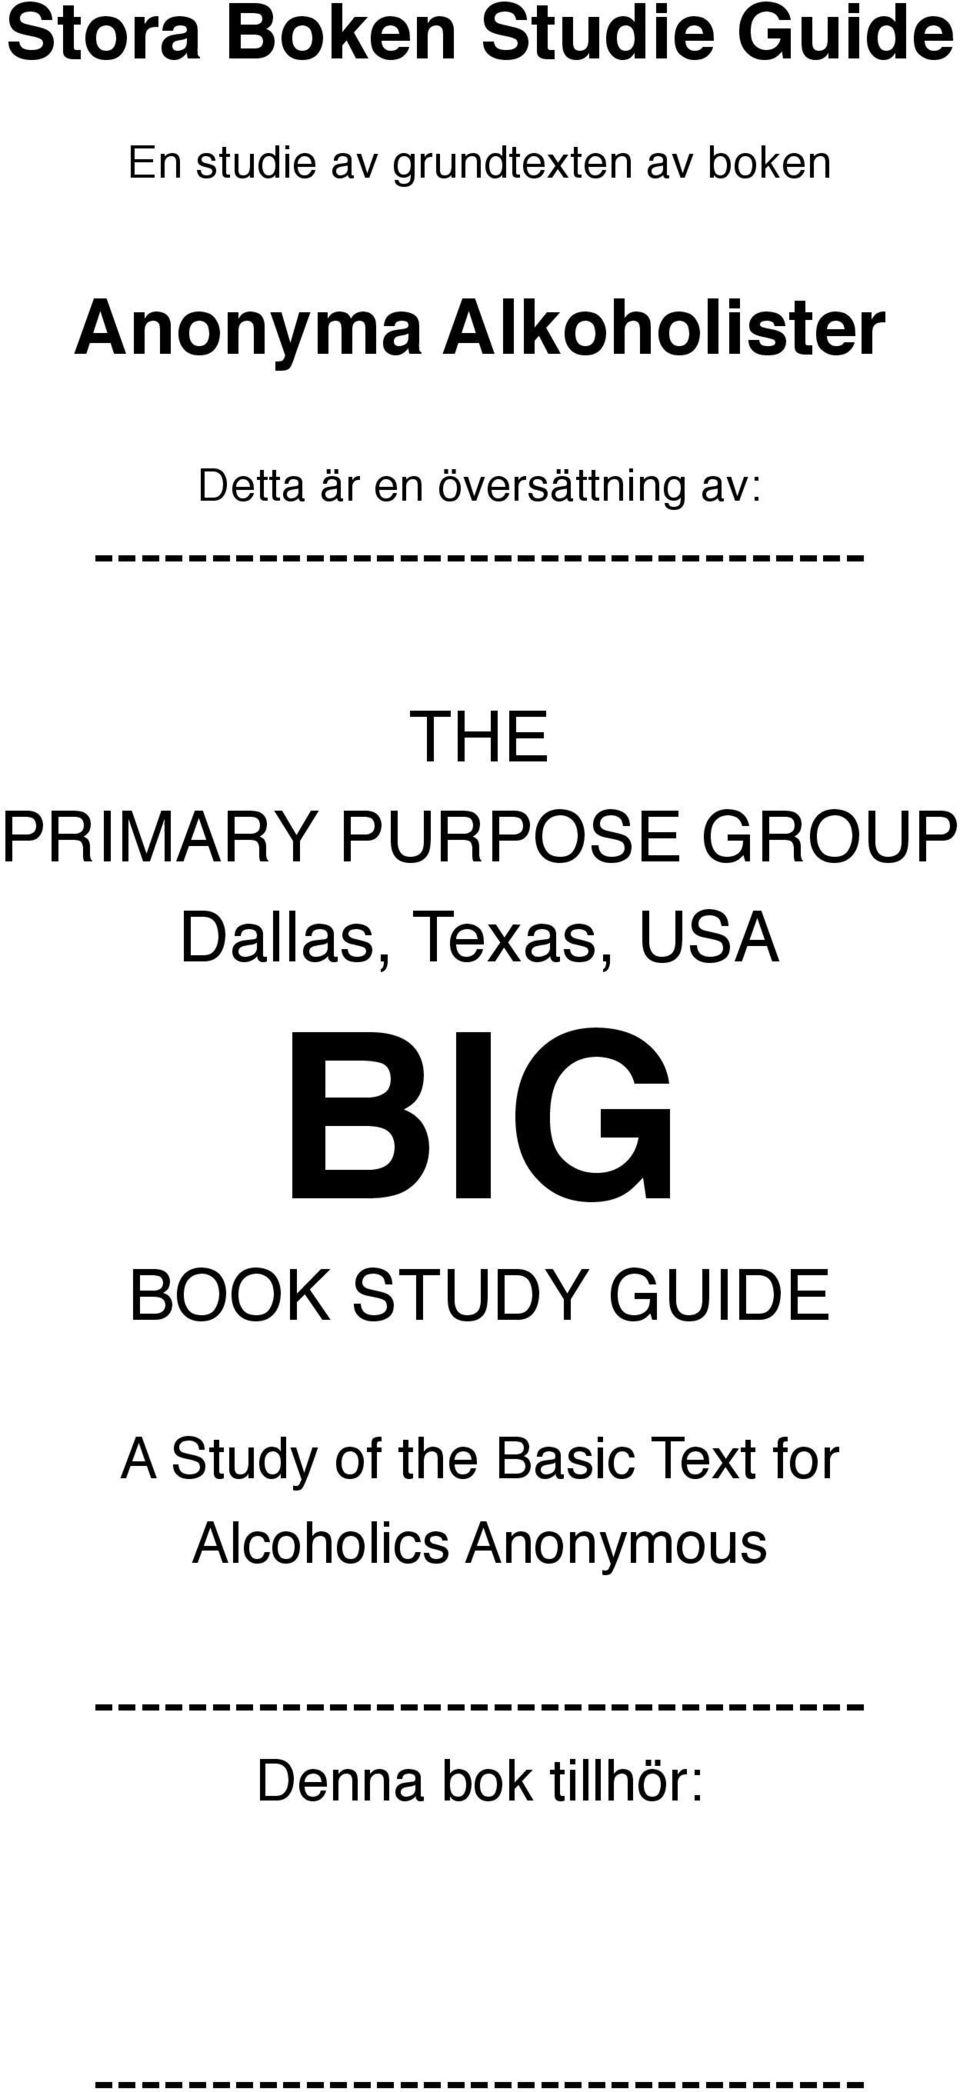 Dallas, Texas, USA BIG BOOK STUDY GUIDE A Study of the Basic Text for Alcoholics